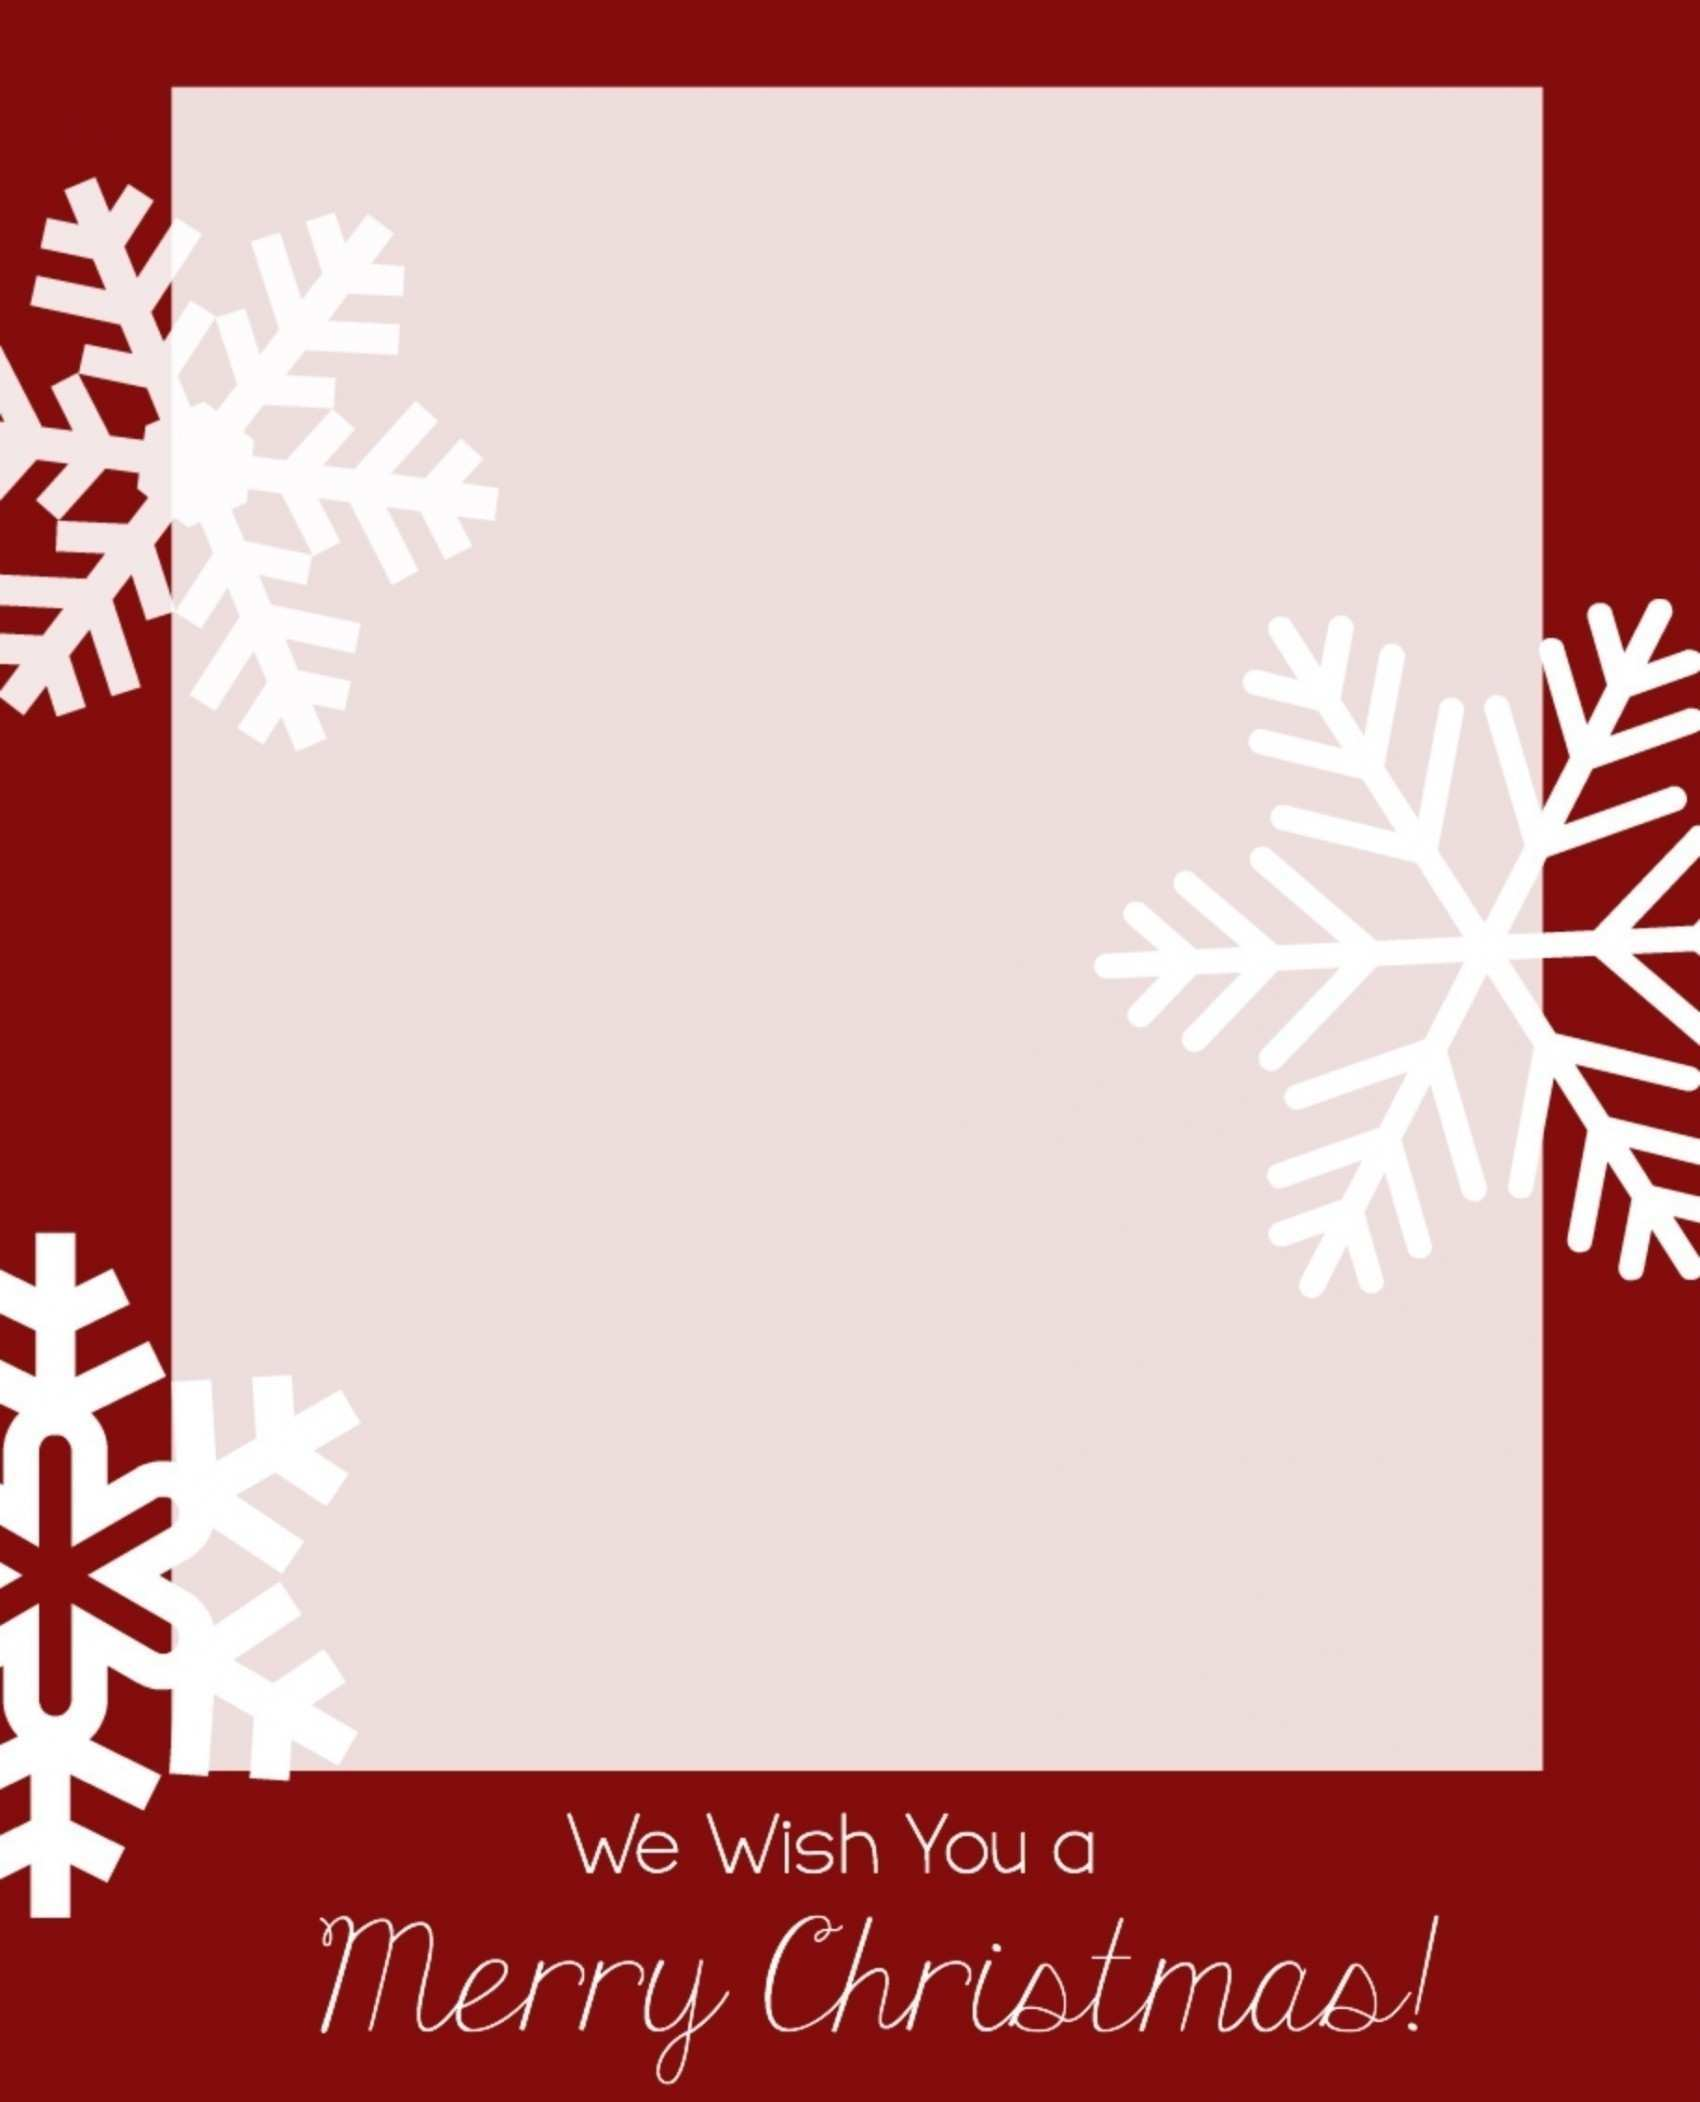 88 Customize Holiday Card Template For Word for Holiday Card Template For Word